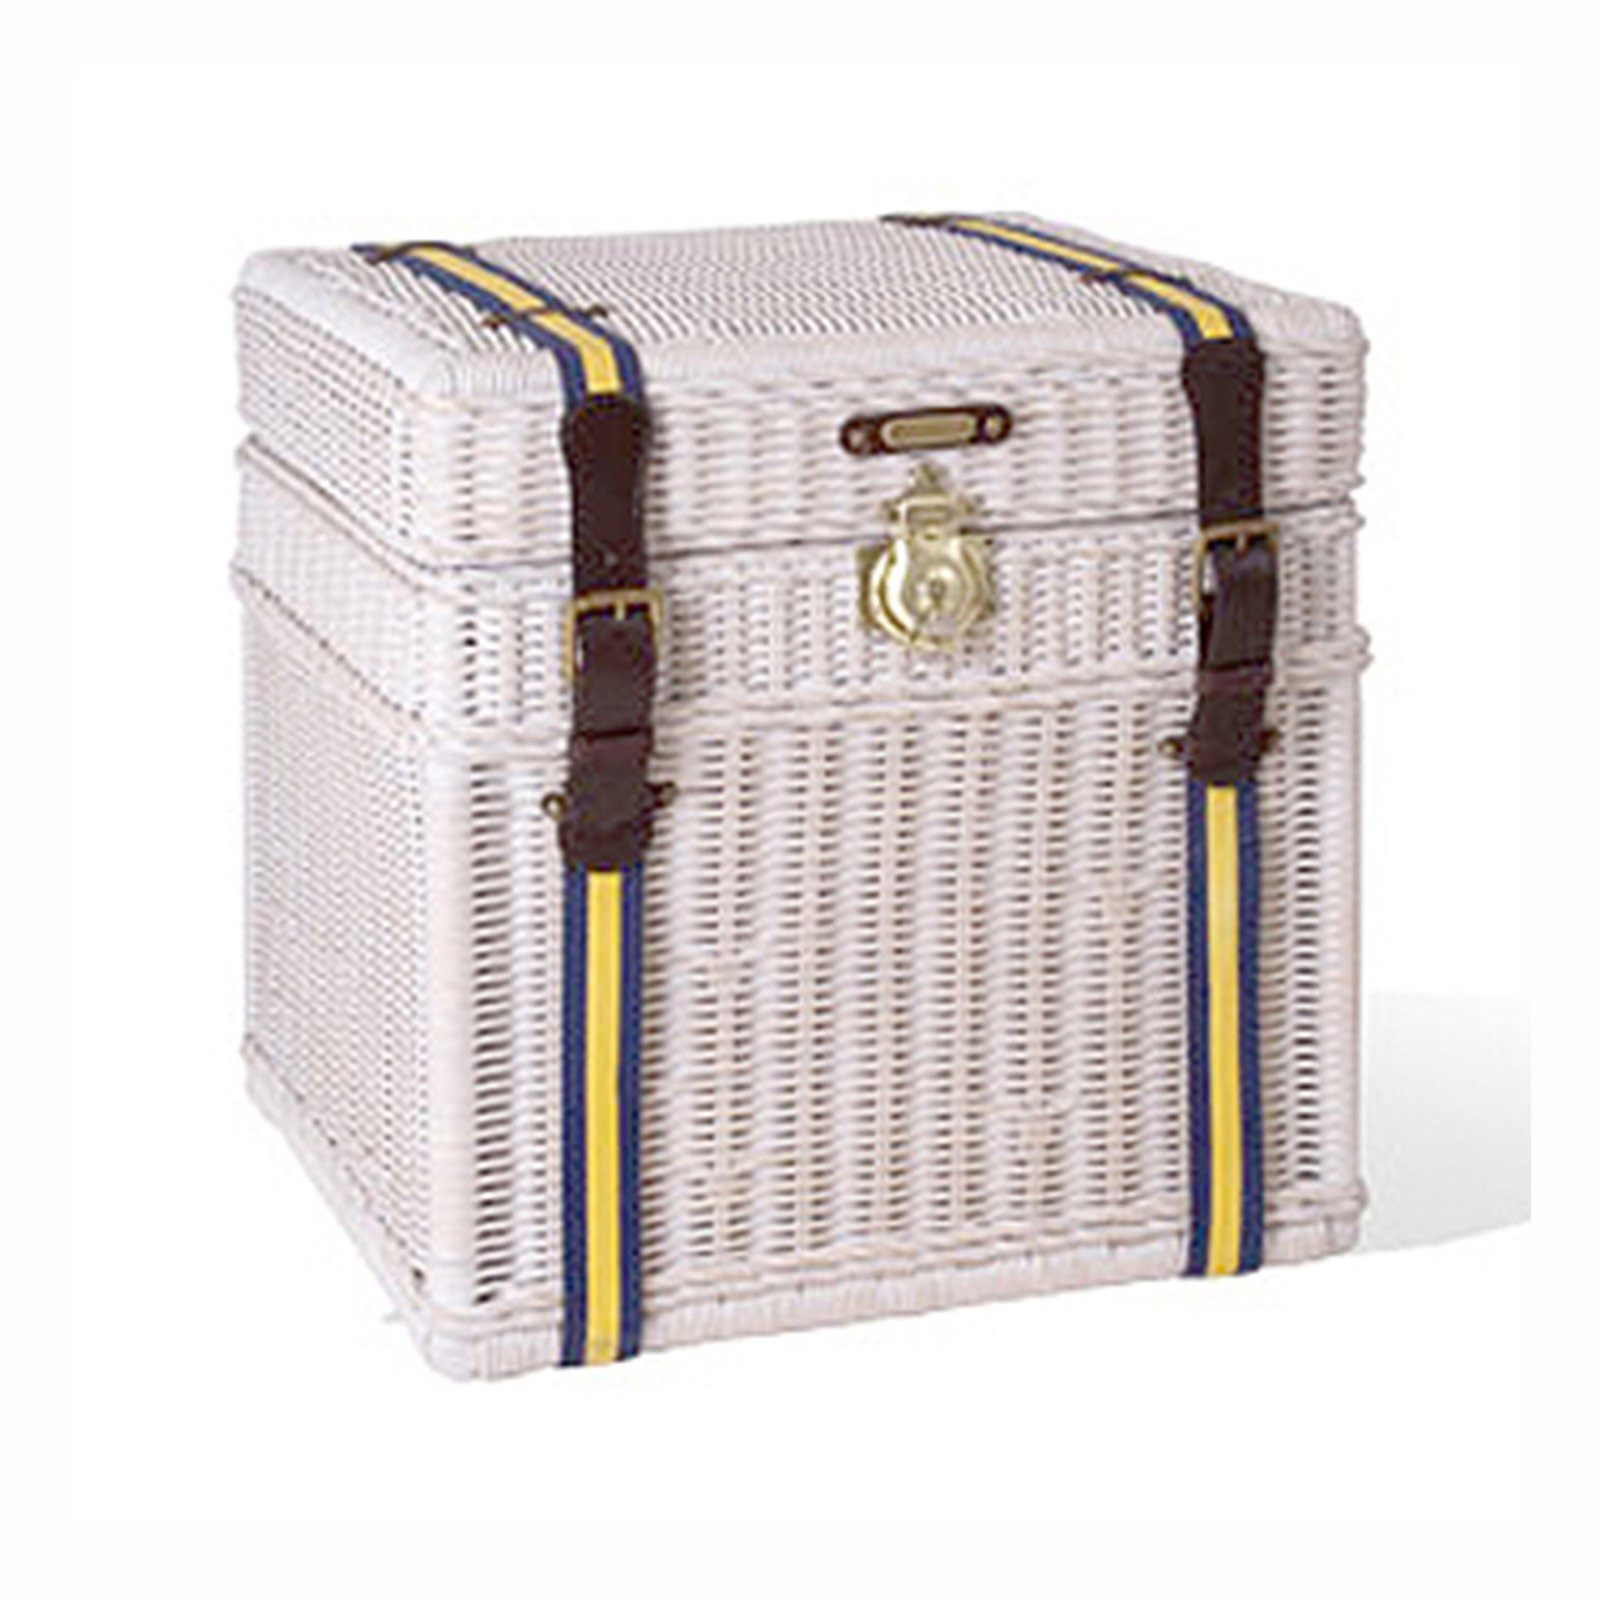 VARSITY WICKER TRUNK - STUART MEMBERY HOME COLLECTION